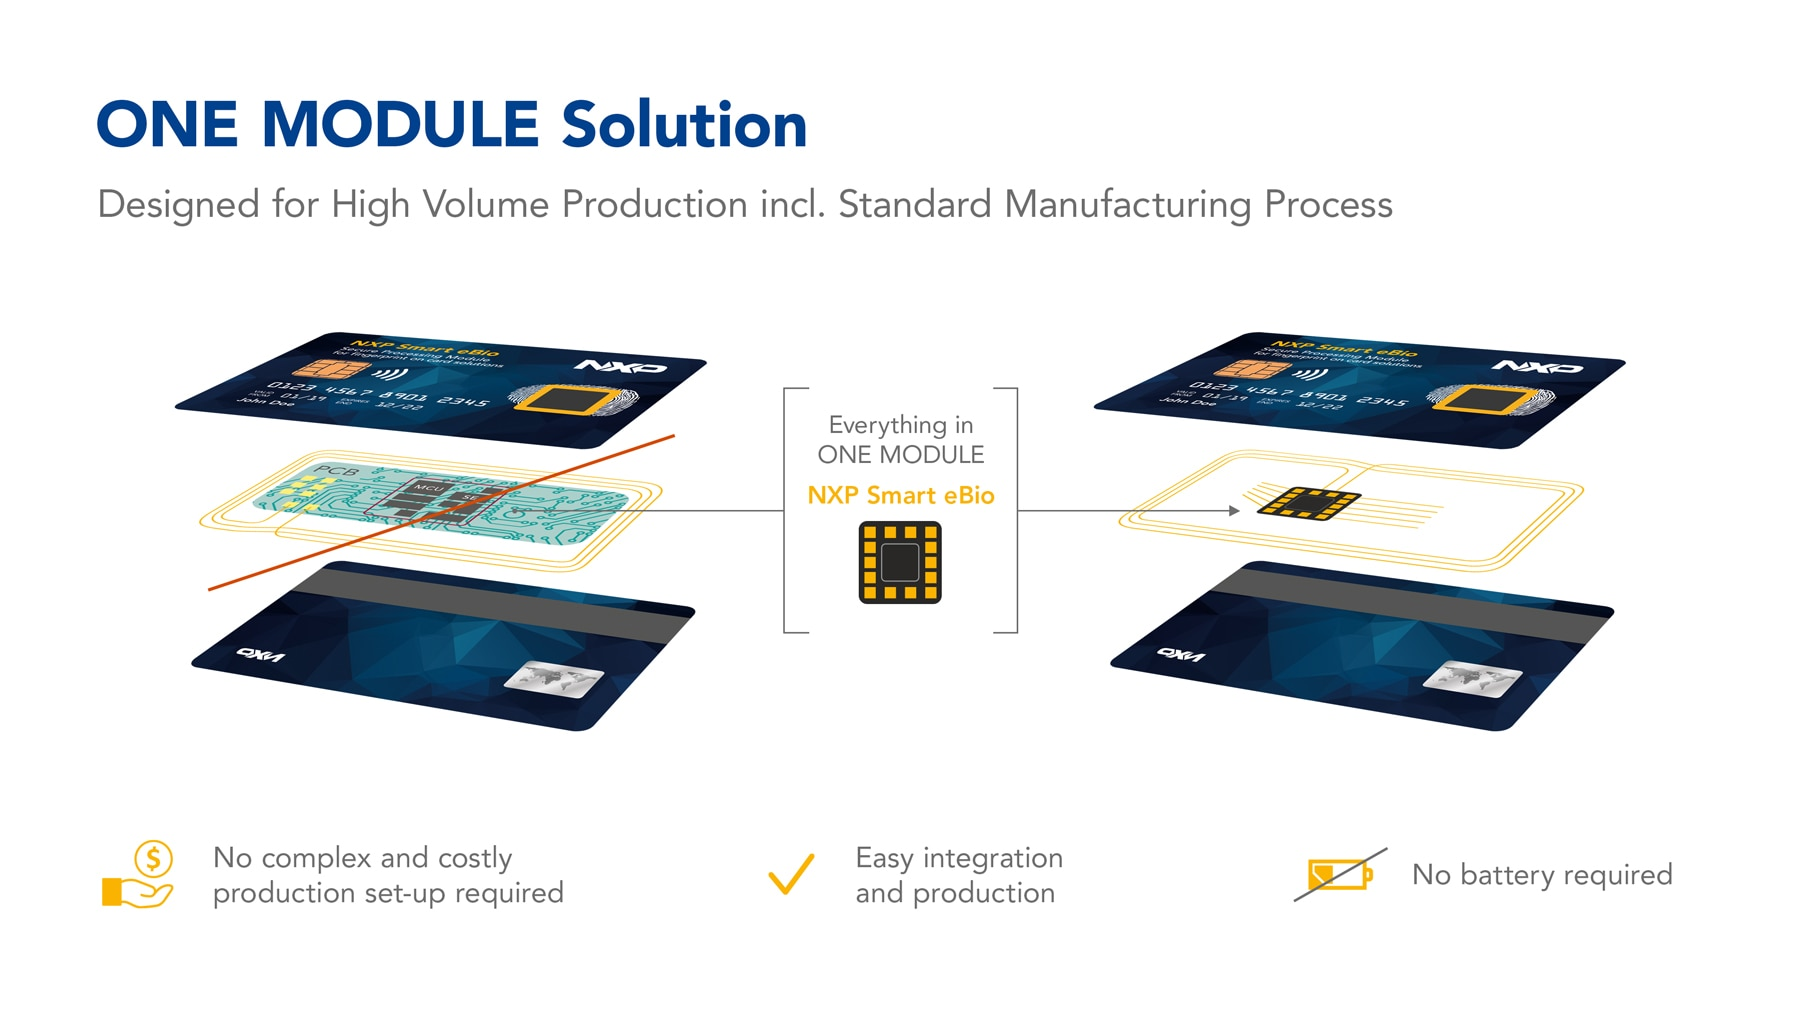 ONE MODULE Solution